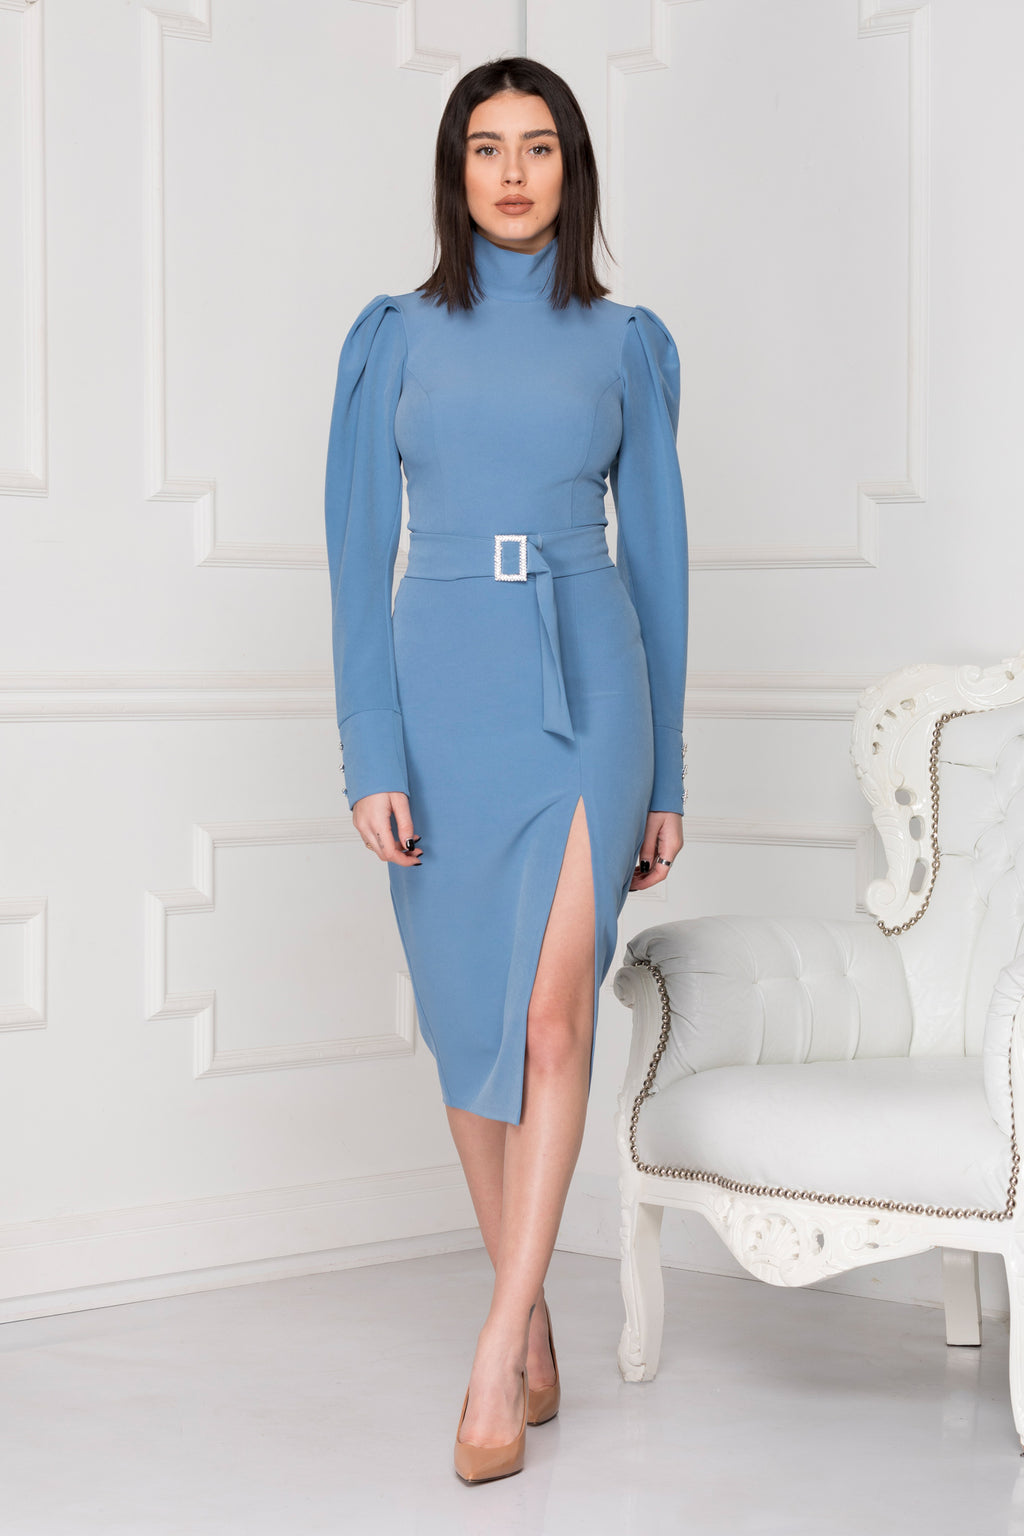 Blue midi luxe dress.